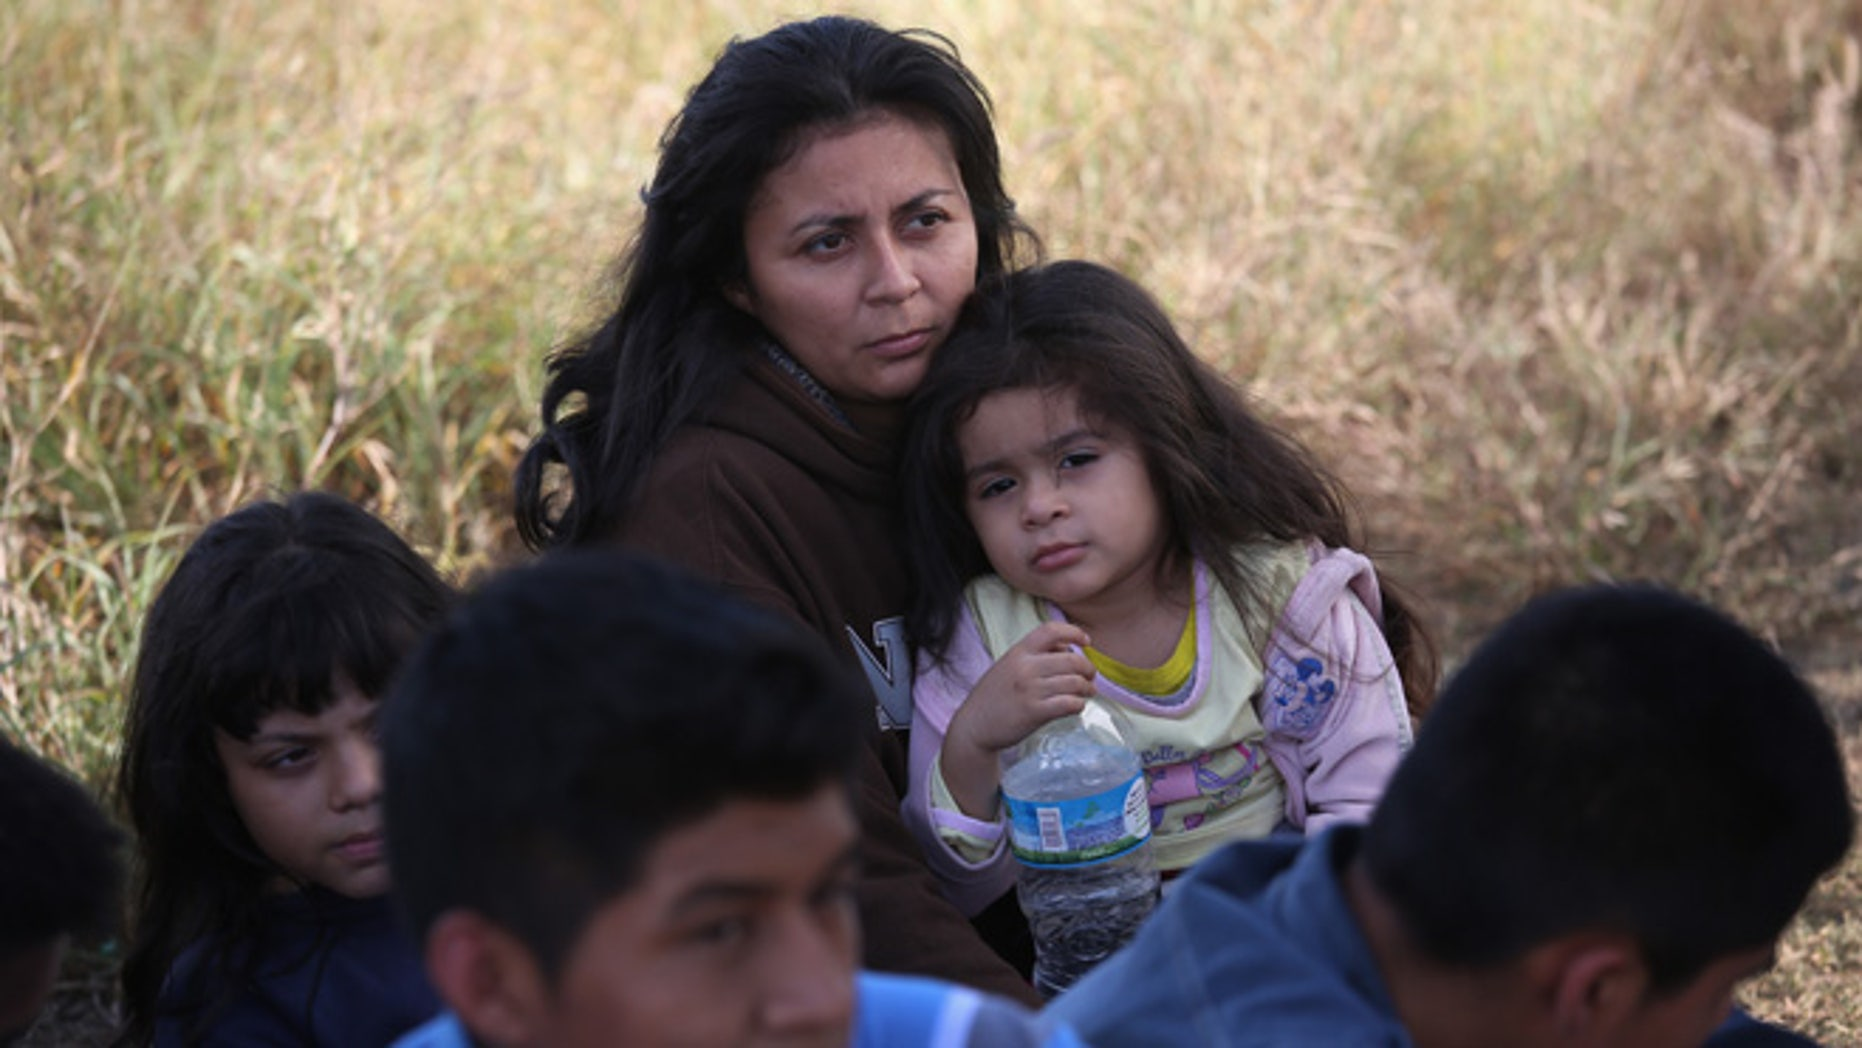 A Honduran mother holds her daughter, 3, after she turned her family in to U.S. Border Patrol agents on December 8, 2015 near Rio Grande City, Texas. They had just illegally crossed the U.S.-Mexico border into Texas. (Photo by John Moore/Getty Images)